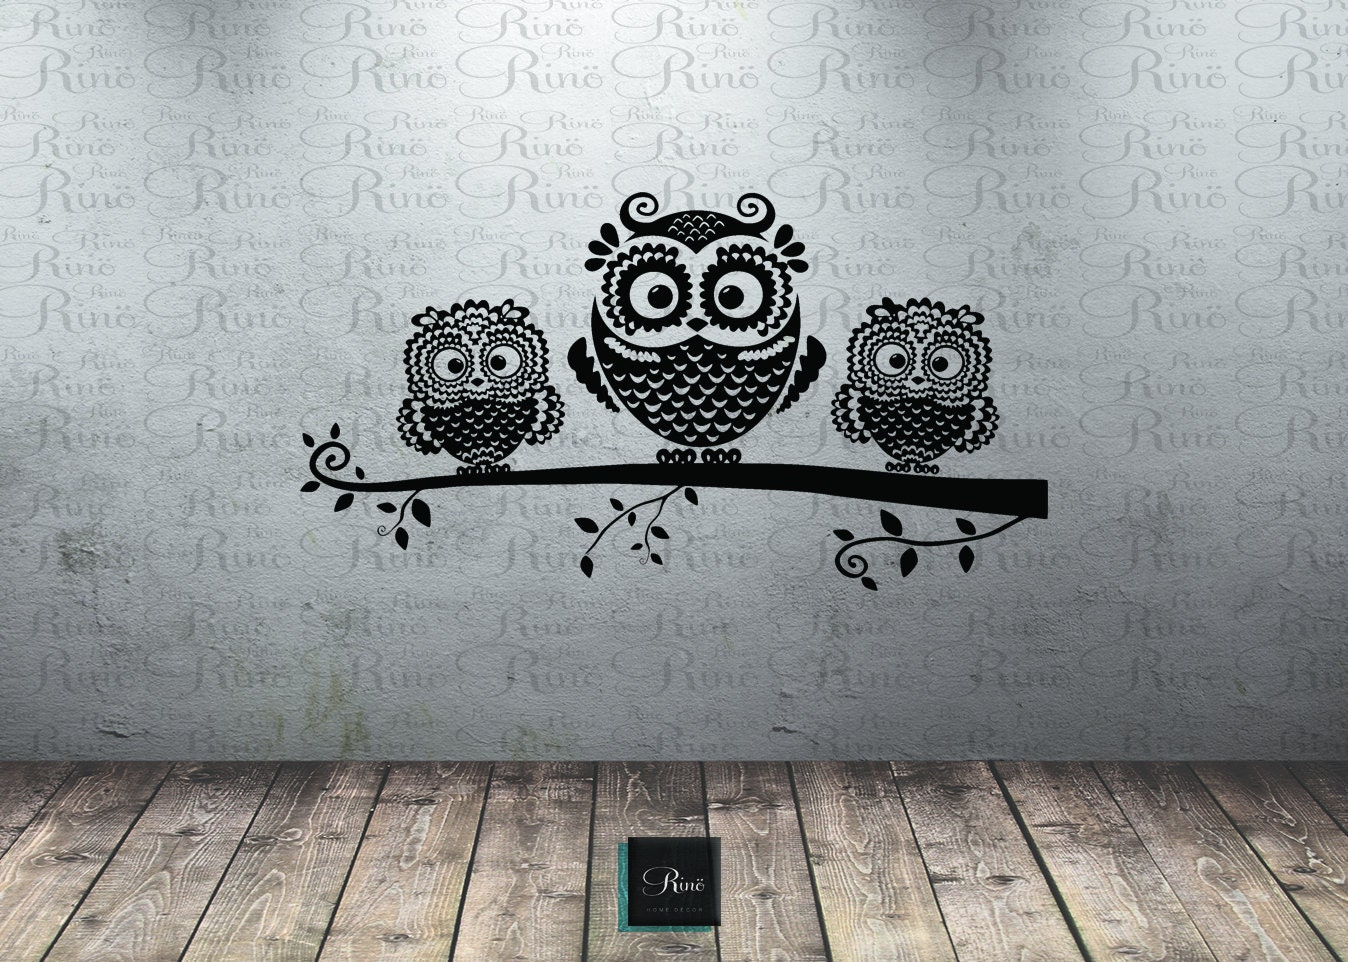 Owl decor for baby room - Owl Wall Decal Owl On Branch Decal Owl Decor Owl Nursery Wall Art Baby Room Tree Mural Decal Owl Vinyl Wall Decals Owl Sticker